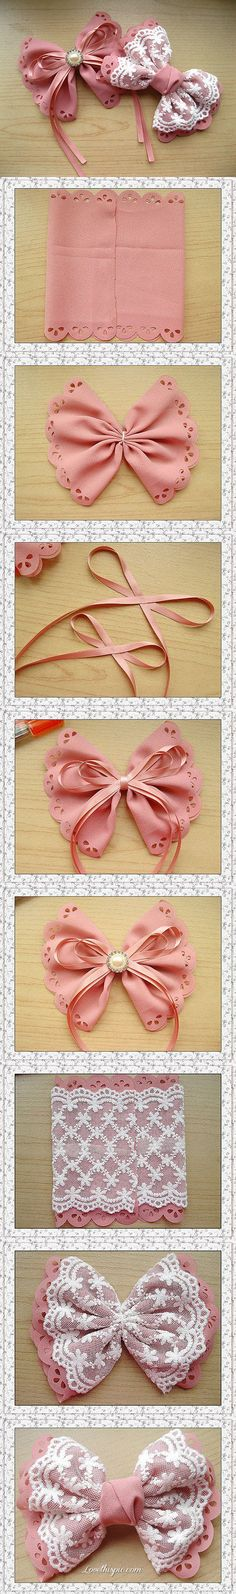 lace bow diy crafts easy crafts easy diy craft bows diy bows